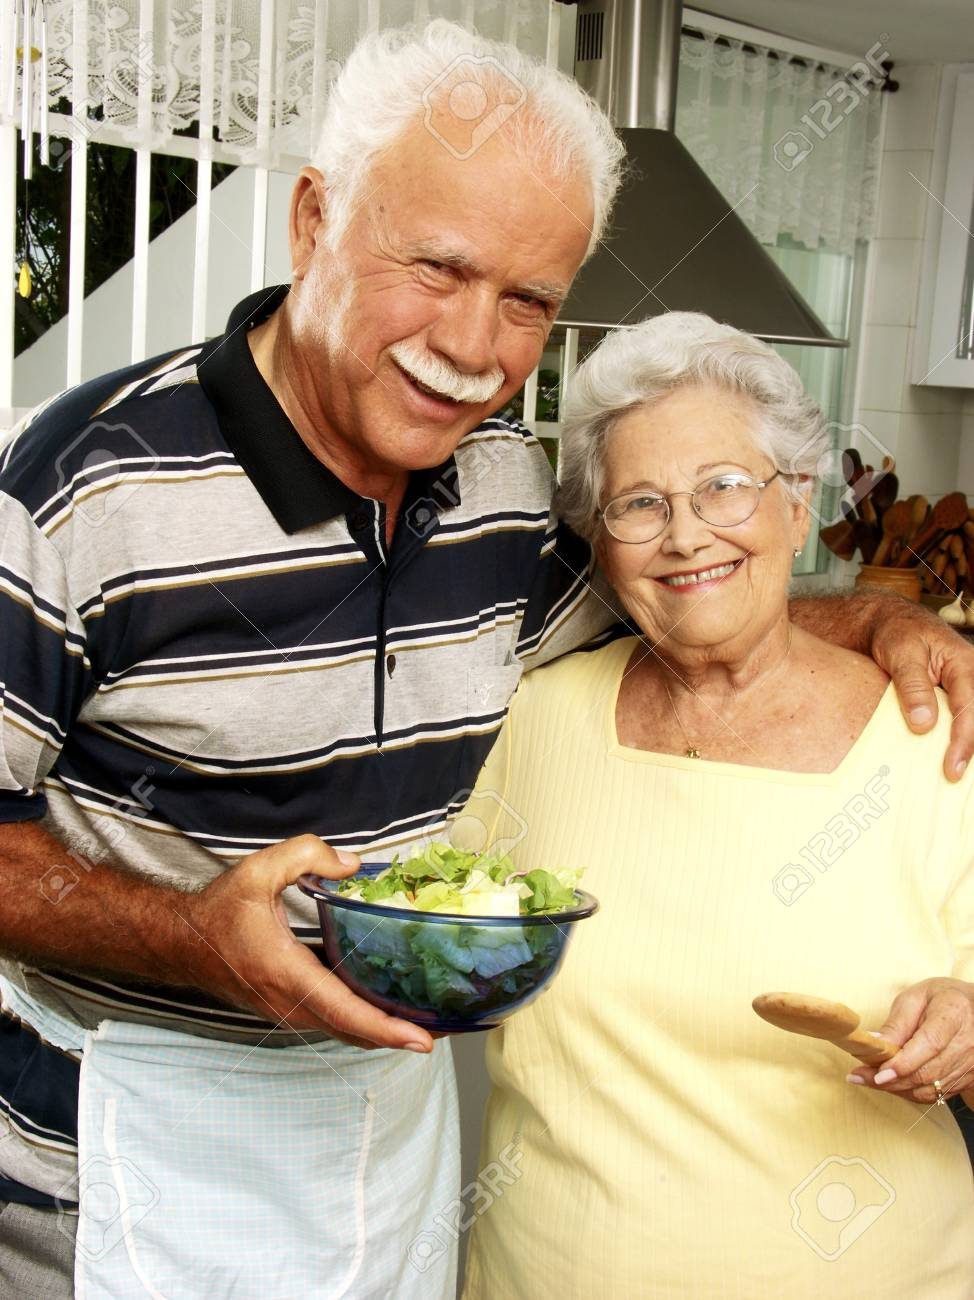 An elderly couple making salad in the kitchen Stock Photo - 22542492